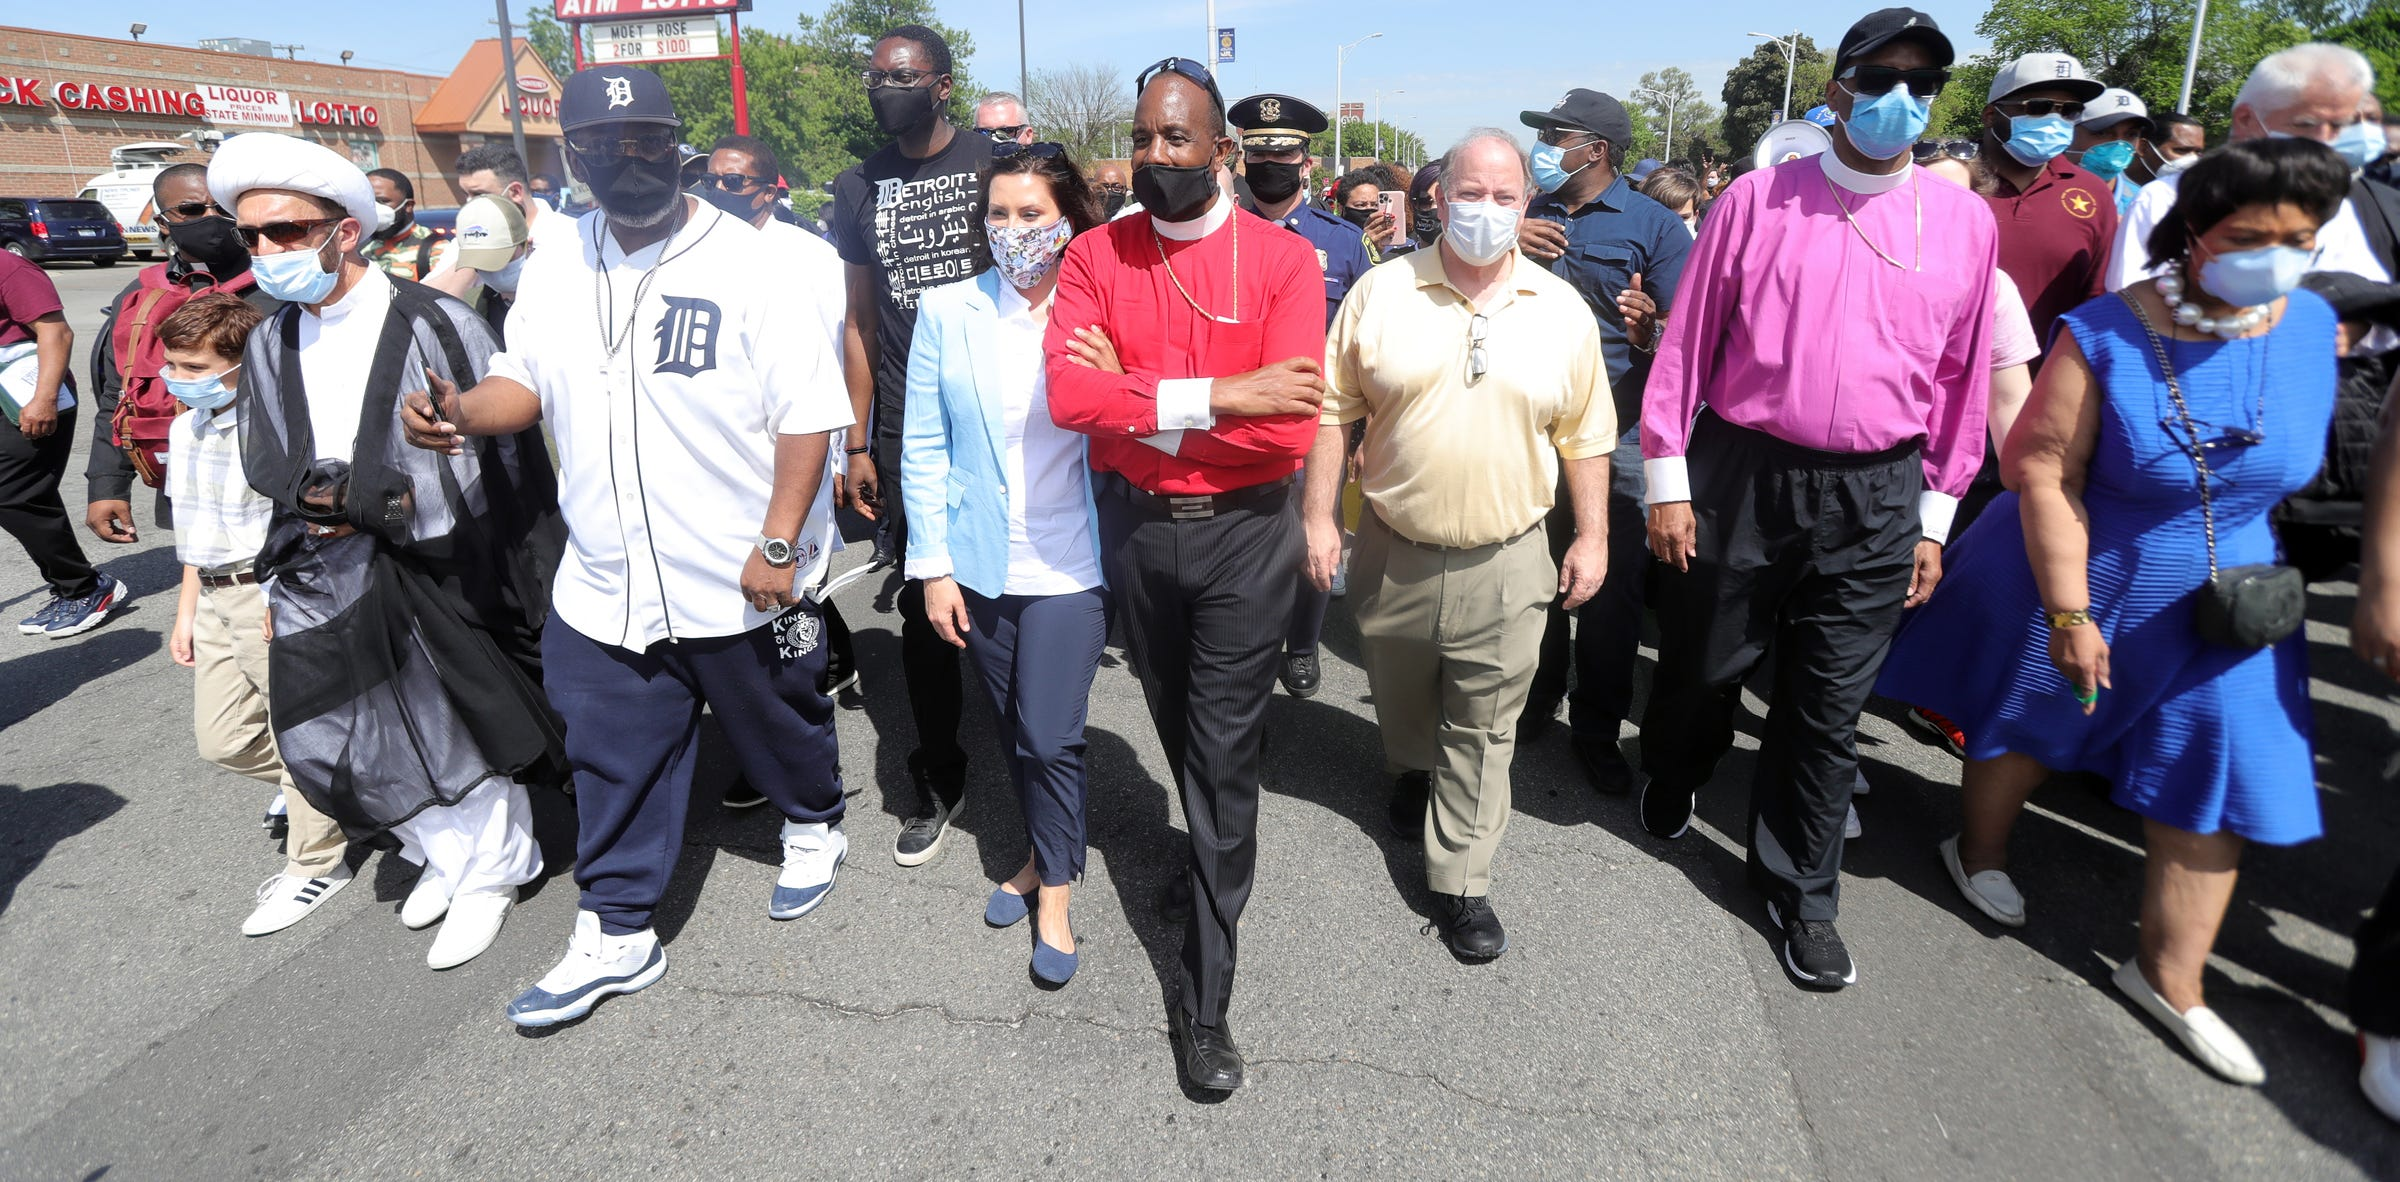 Gov. Gretchen Whitmer, Greater Grace Temple pastor Charles H. Ellis III and Detroit mayor Mike Duggan were among those who marched against police brutality on Thursday, June 4, 2020 in Detroit Michigan. The leaders represented churches, temples and mosques from around the metro area.